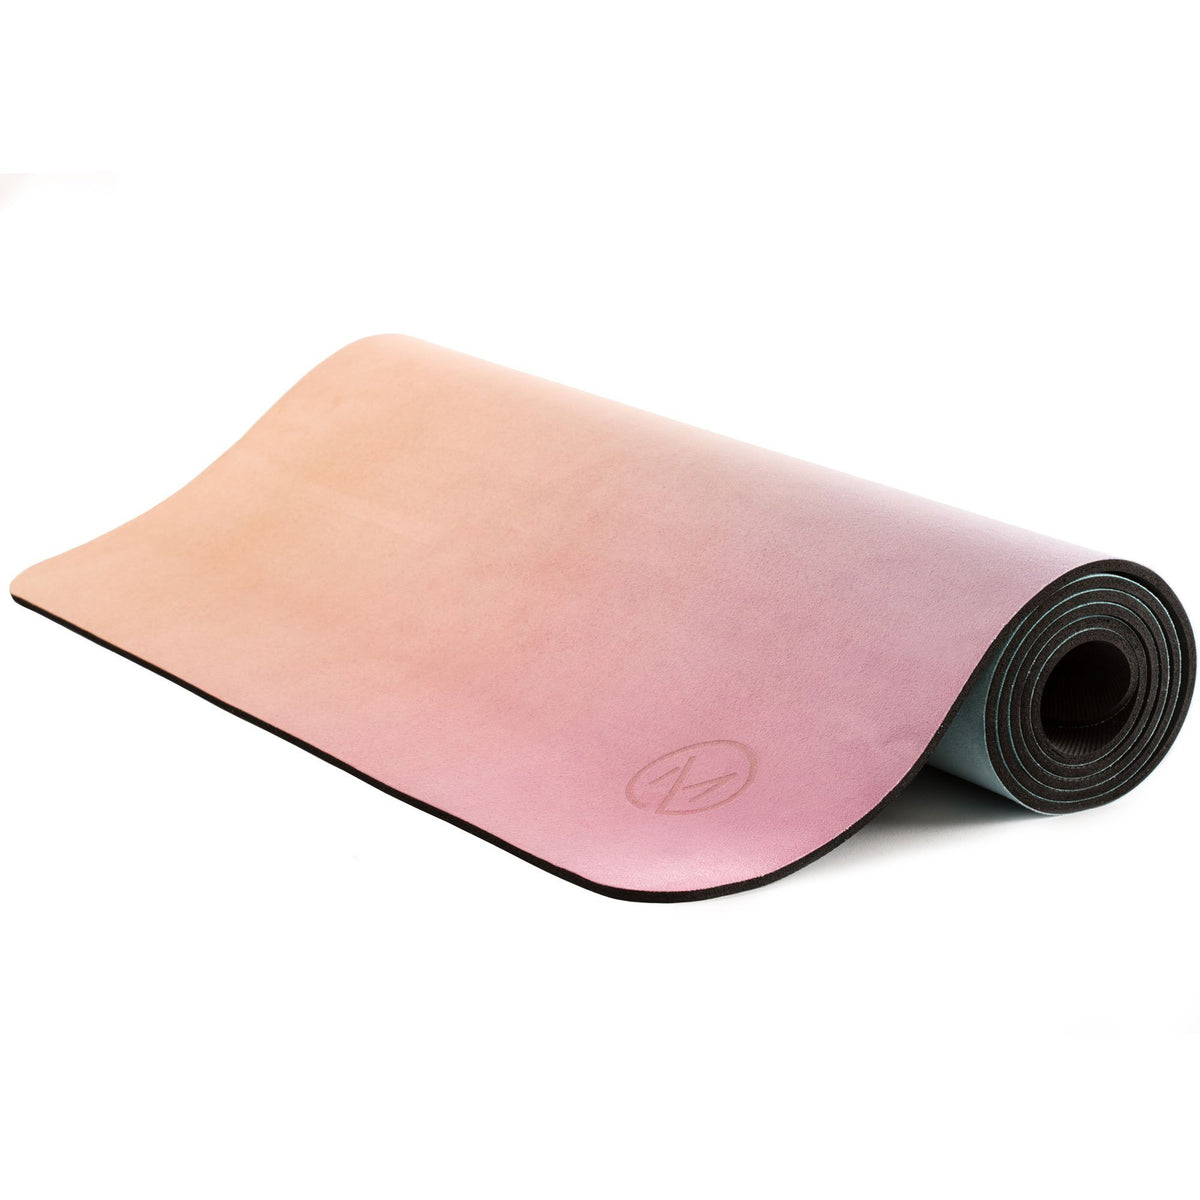 Metaform Balance Yoga Mat